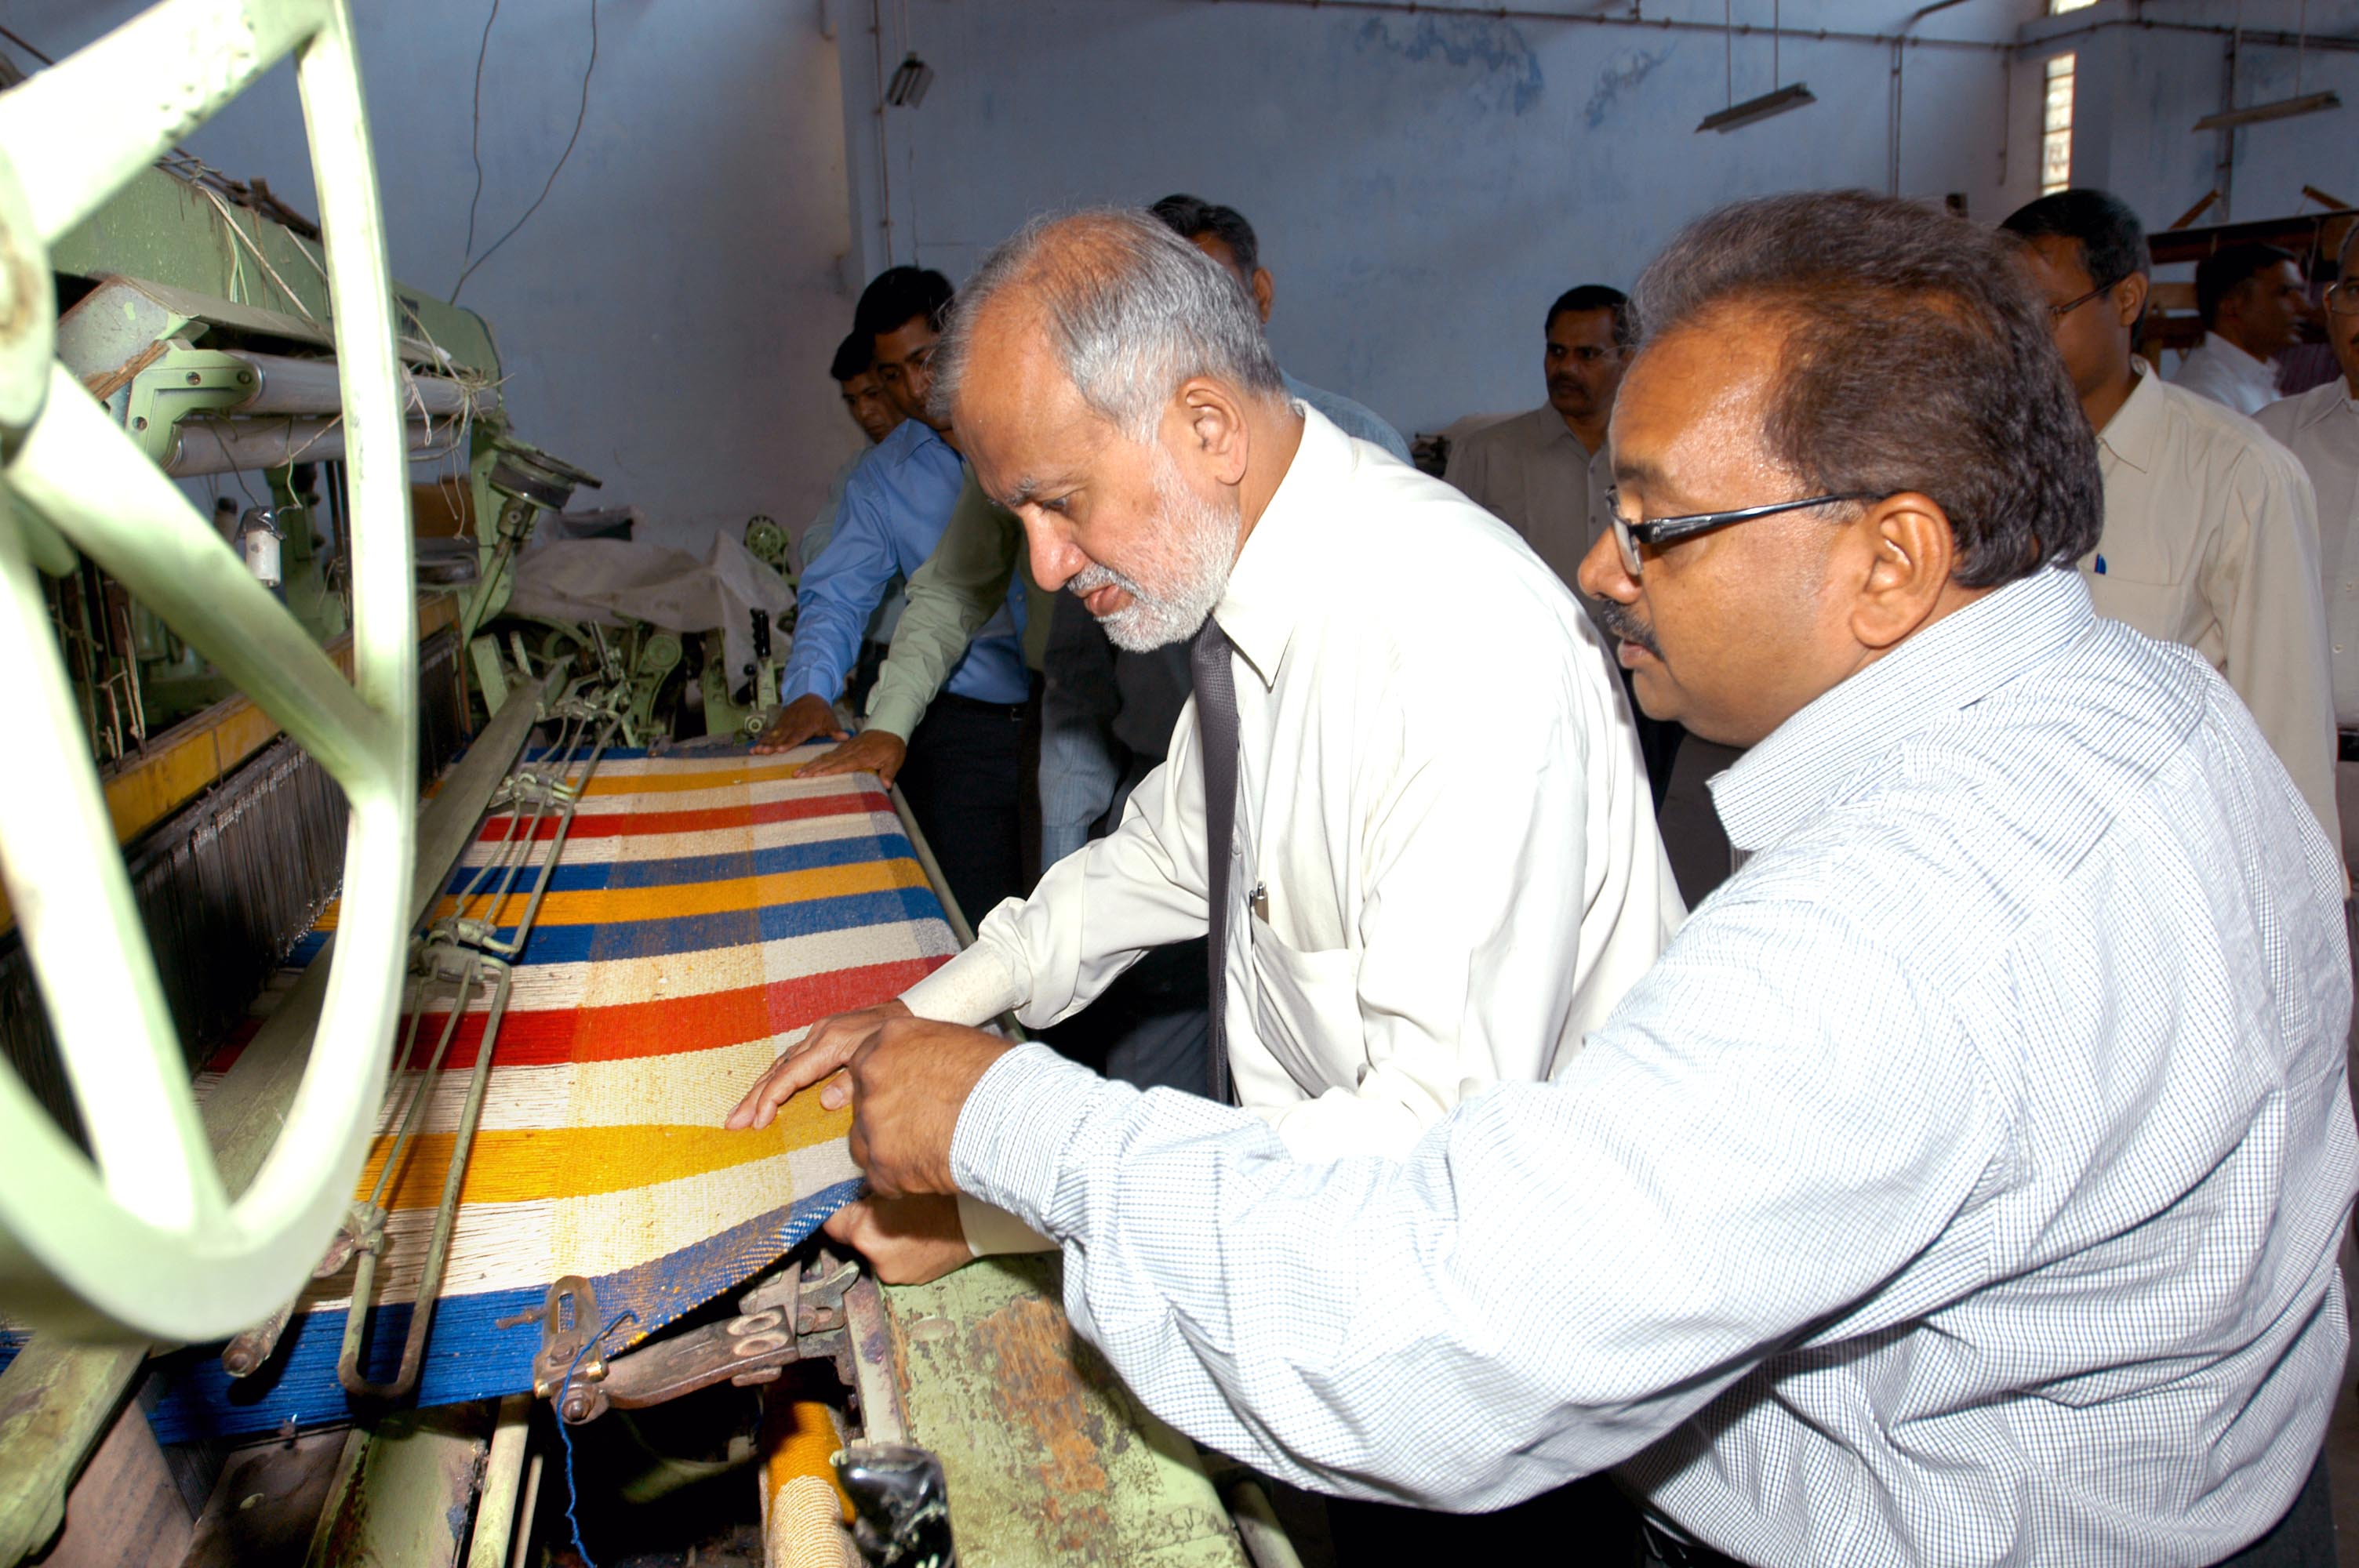 Visit to Wool Processing Plant